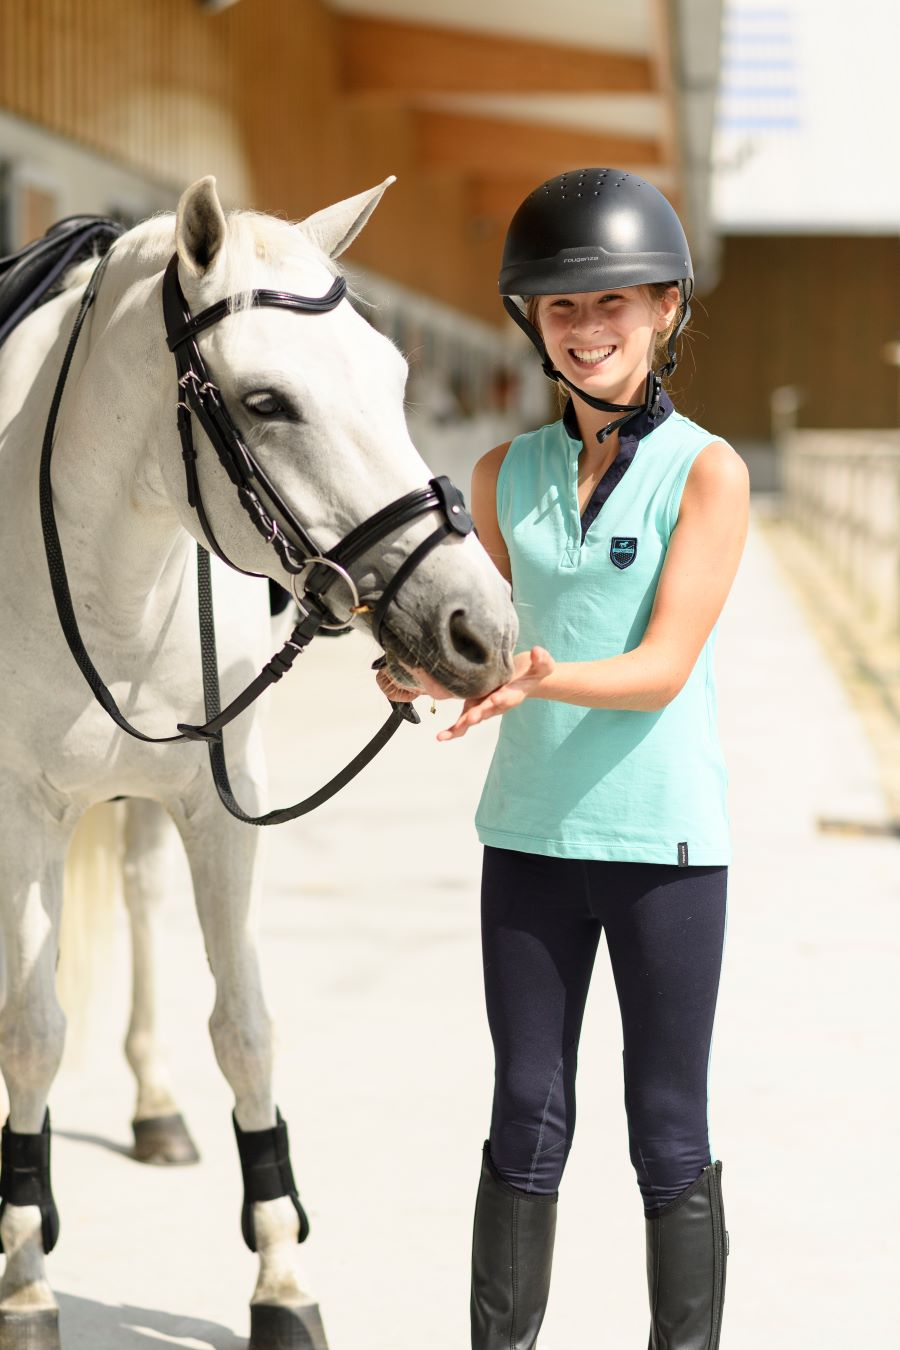 How To Start Horse Riding?